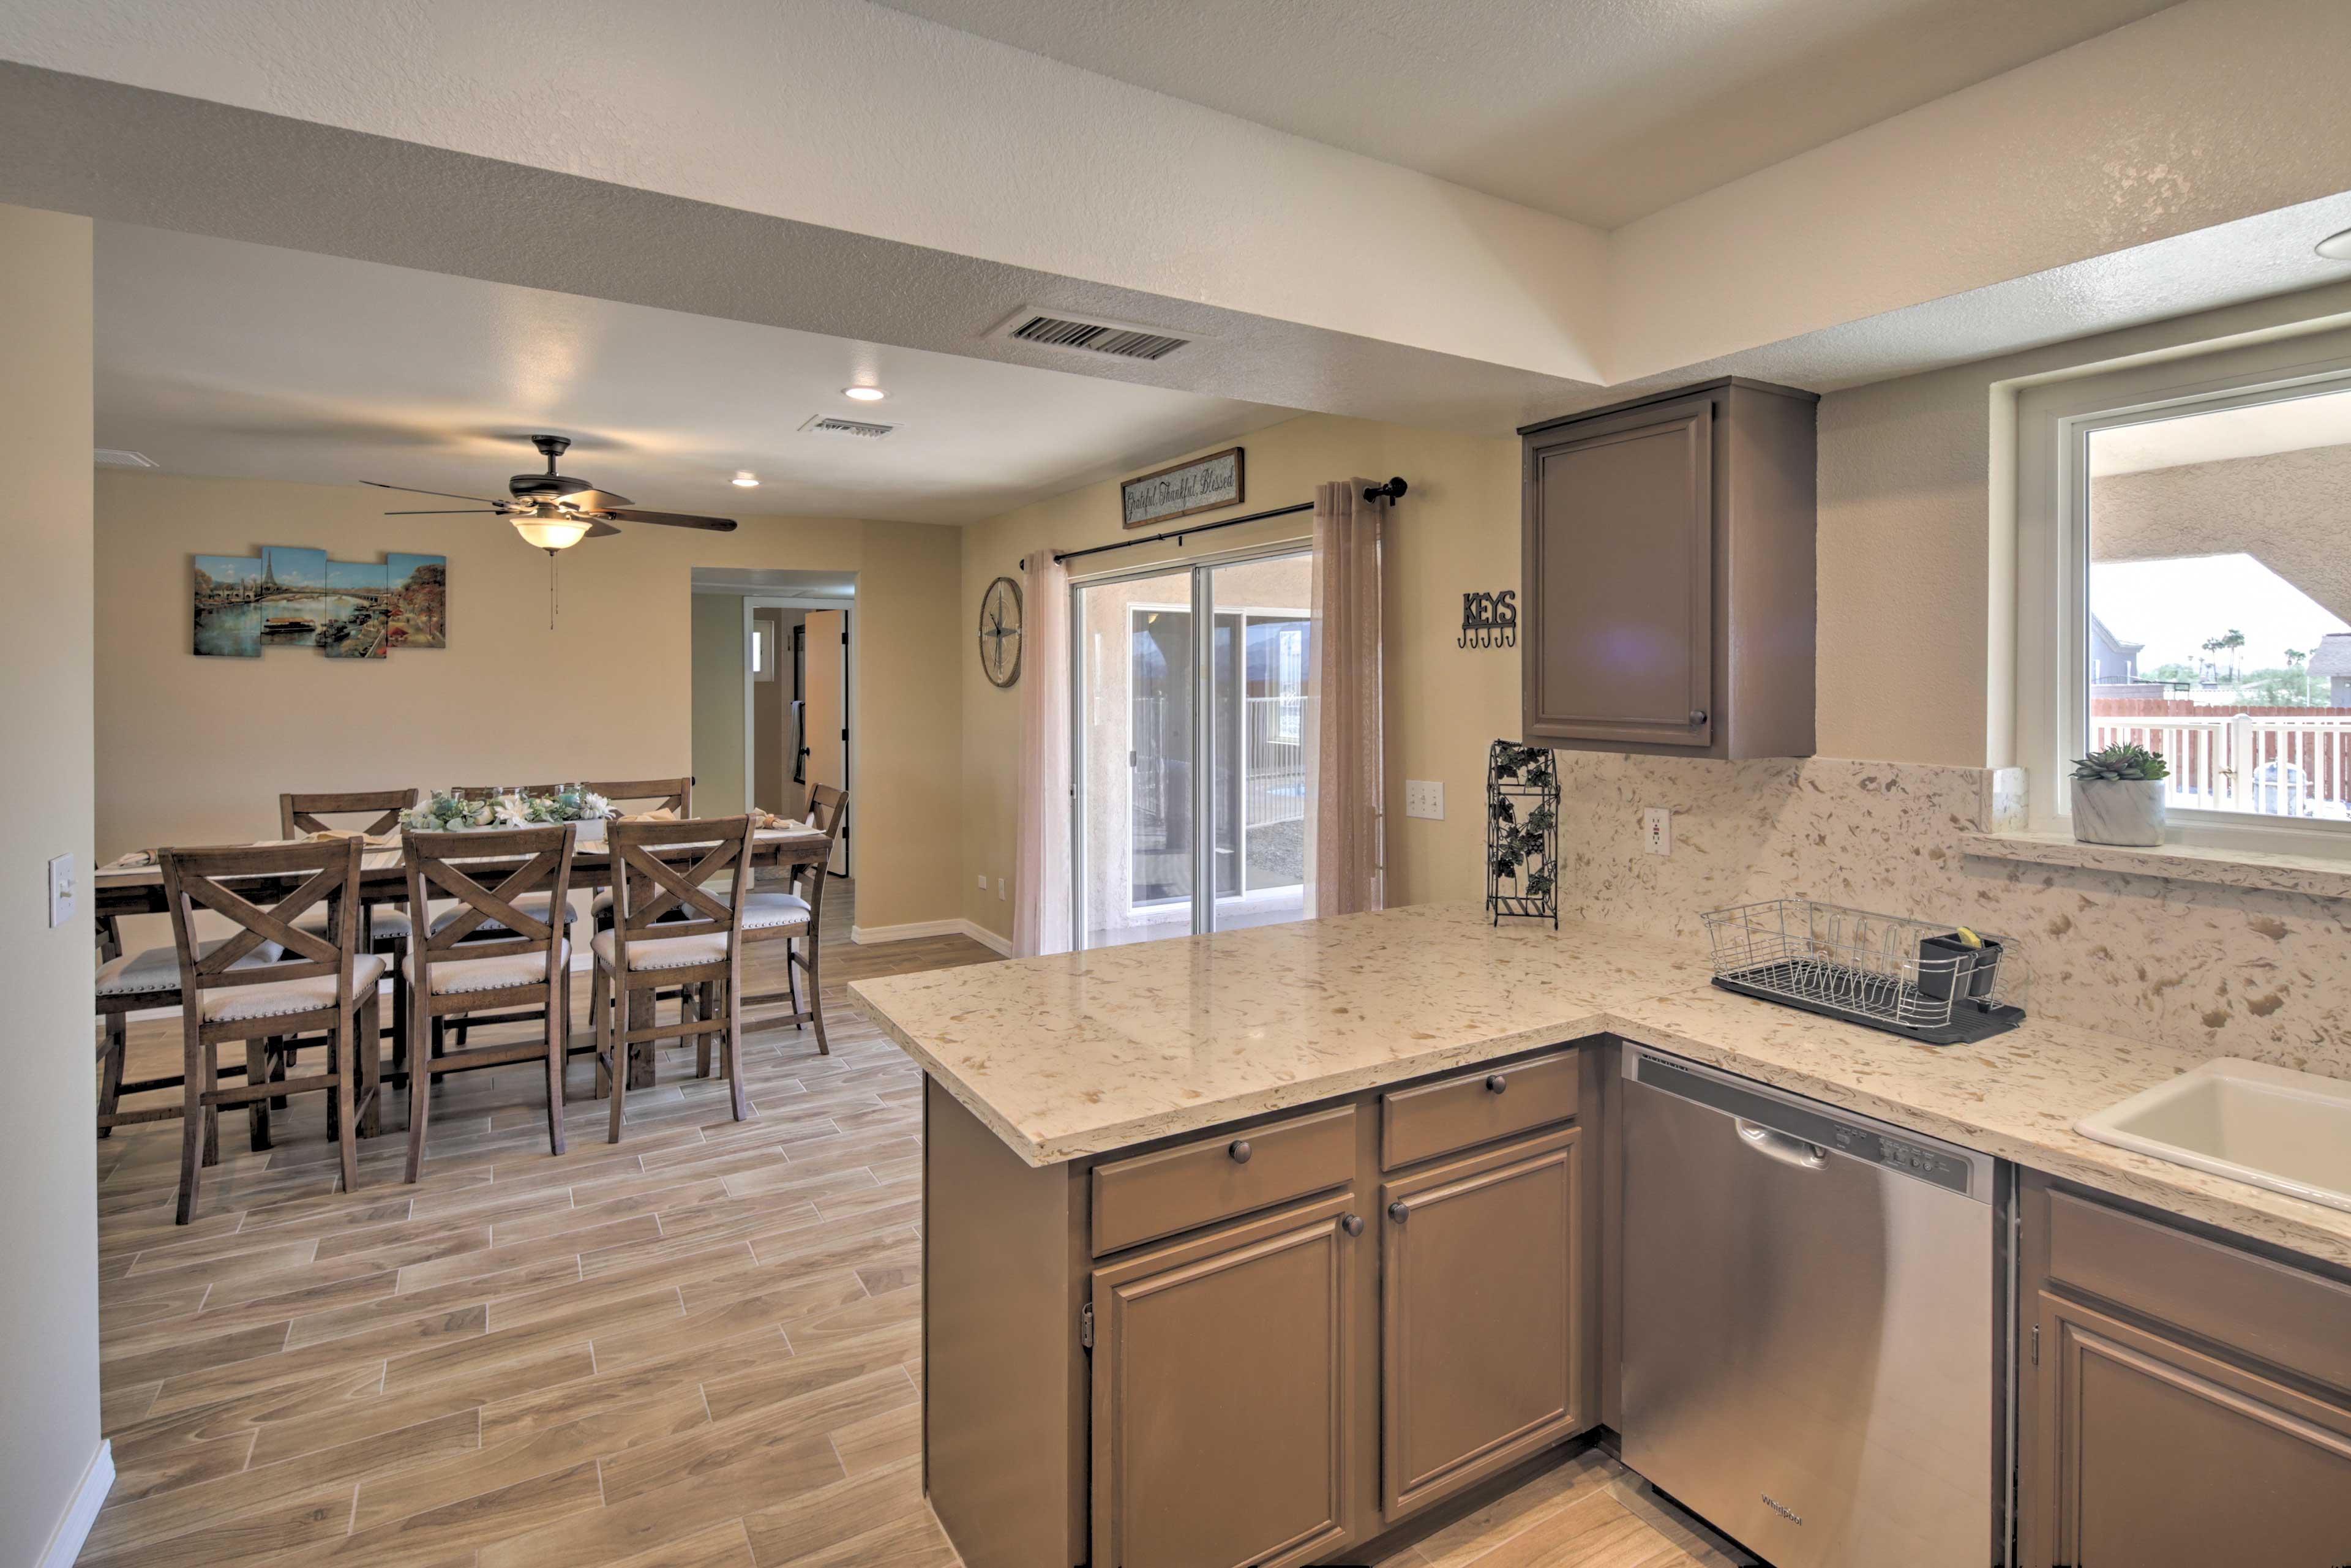 The kitchen is fully equipped, featuring sleek counters.